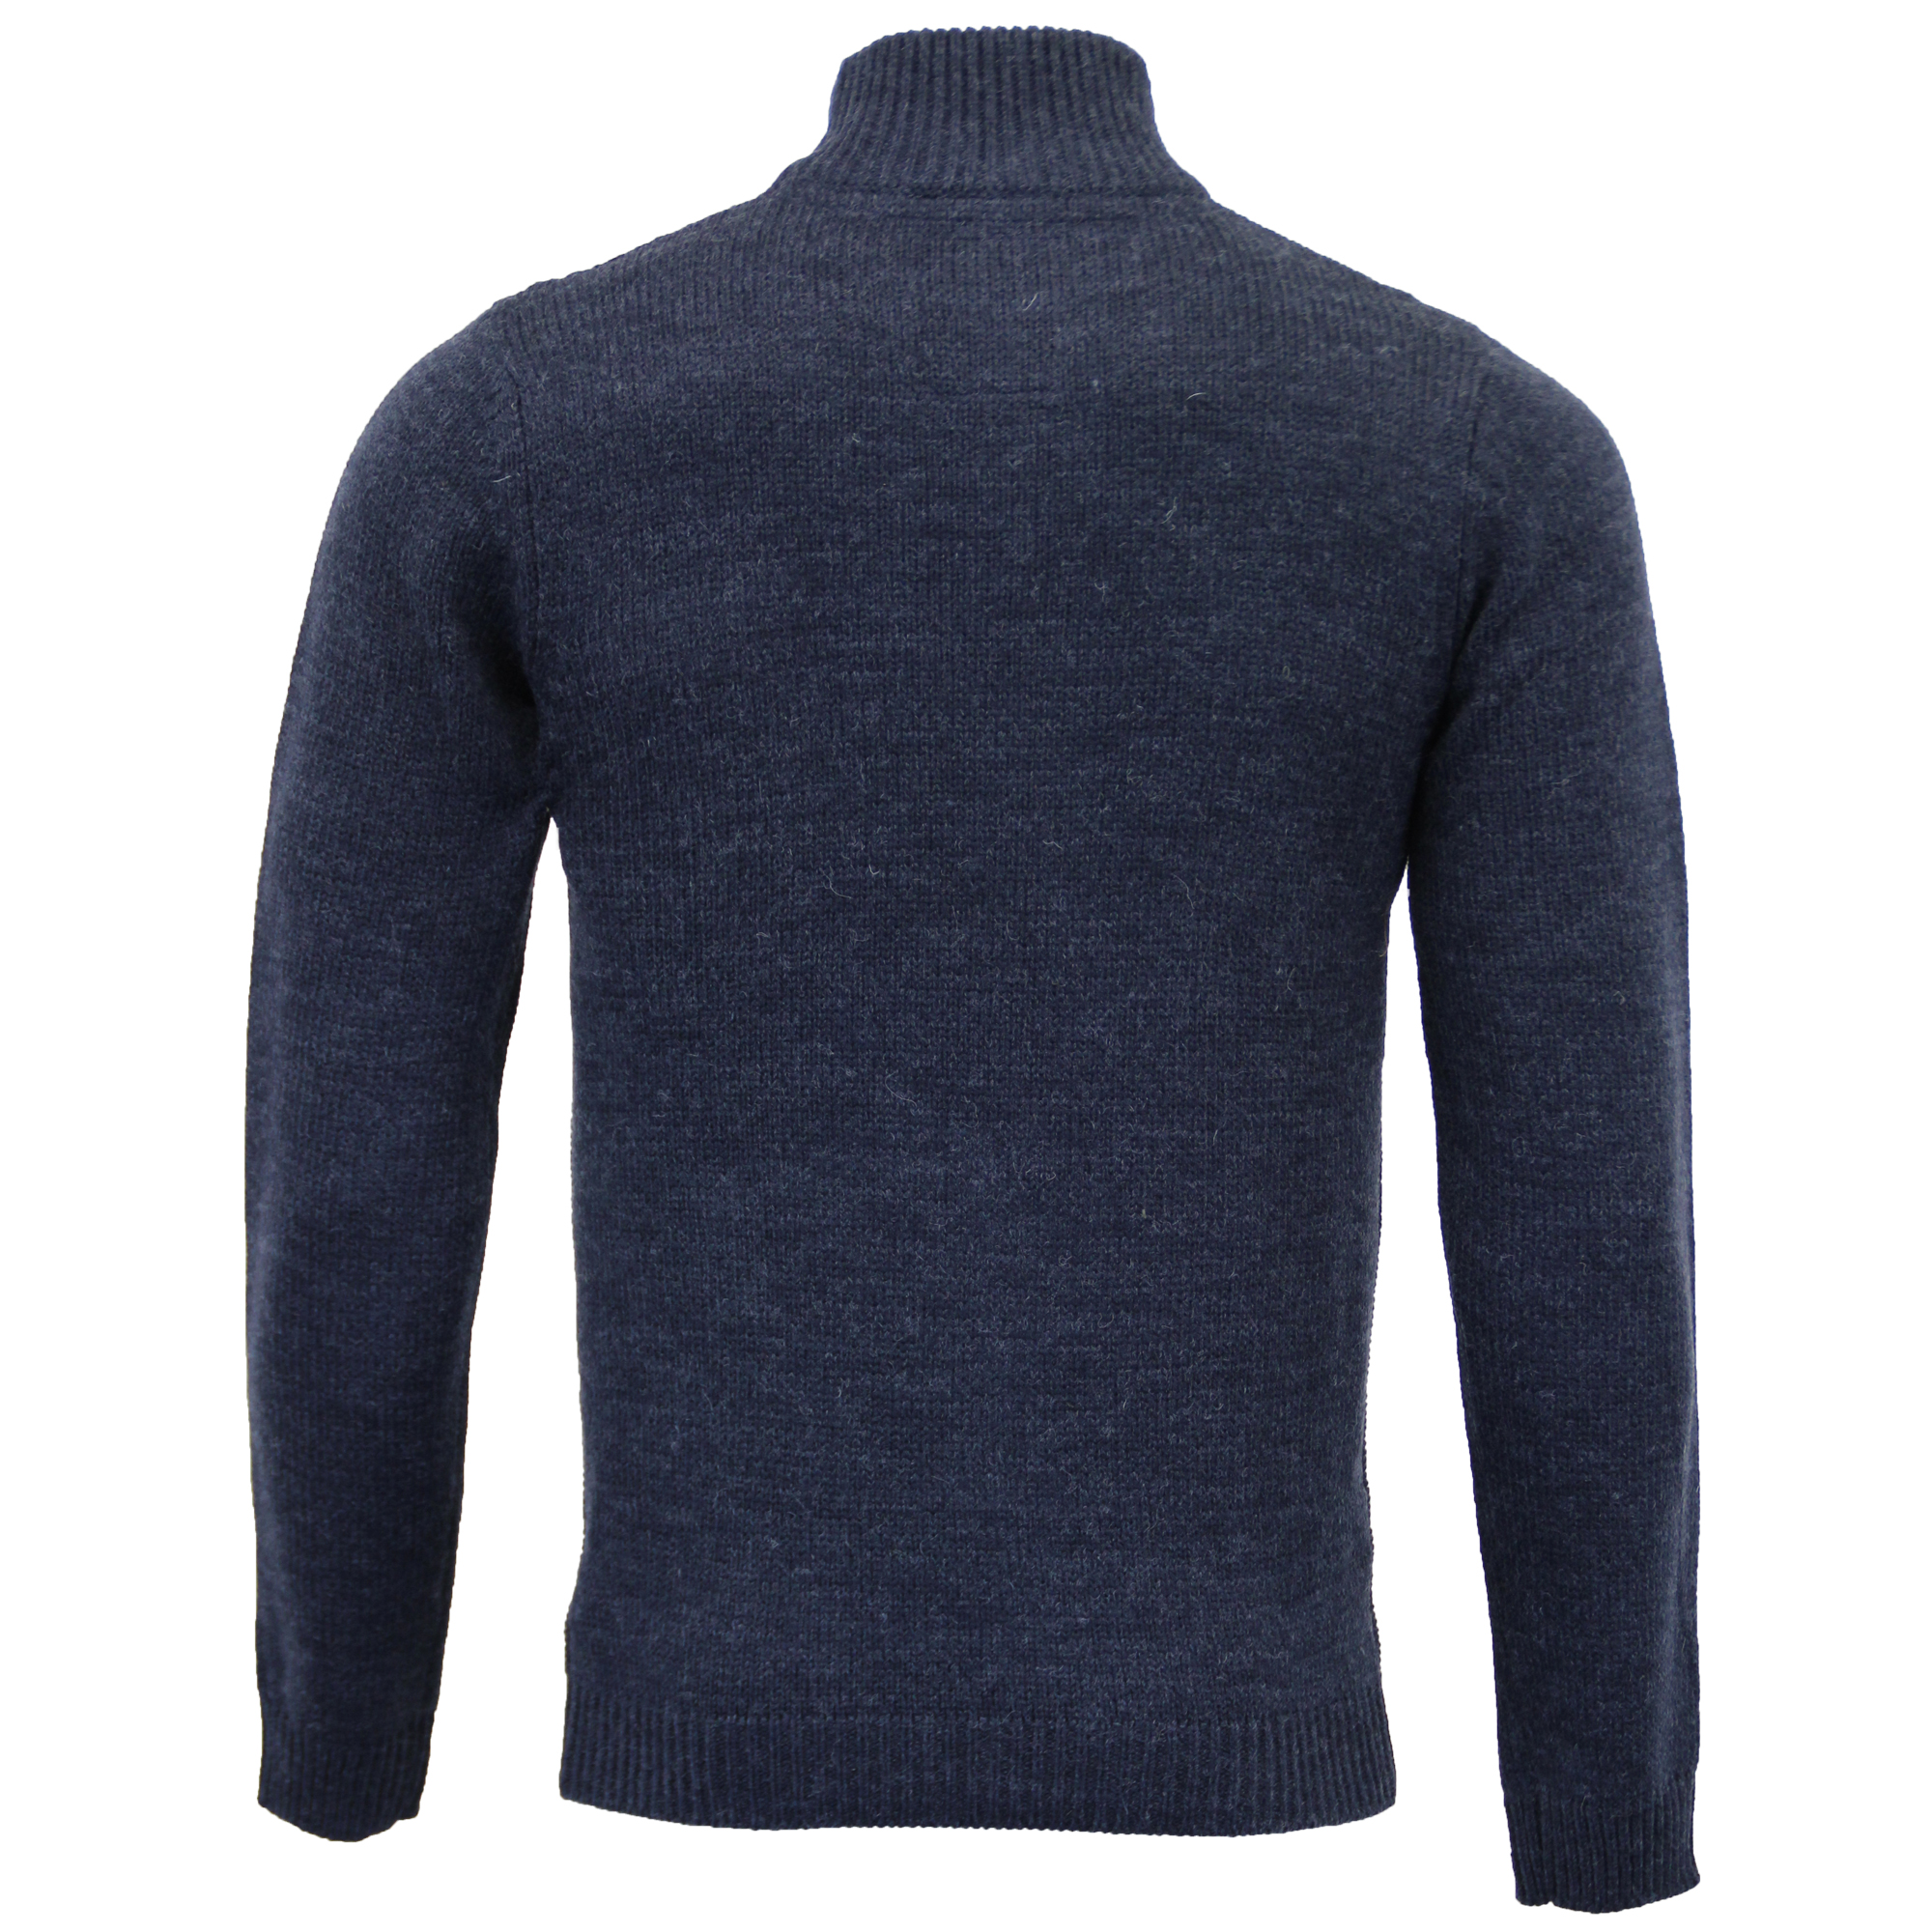 Mens-Wool-Mix-Jumper-Threadbare-Knitted-Sweater-Pullover-Top-Chunky-Zip-Winter thumbnail 27